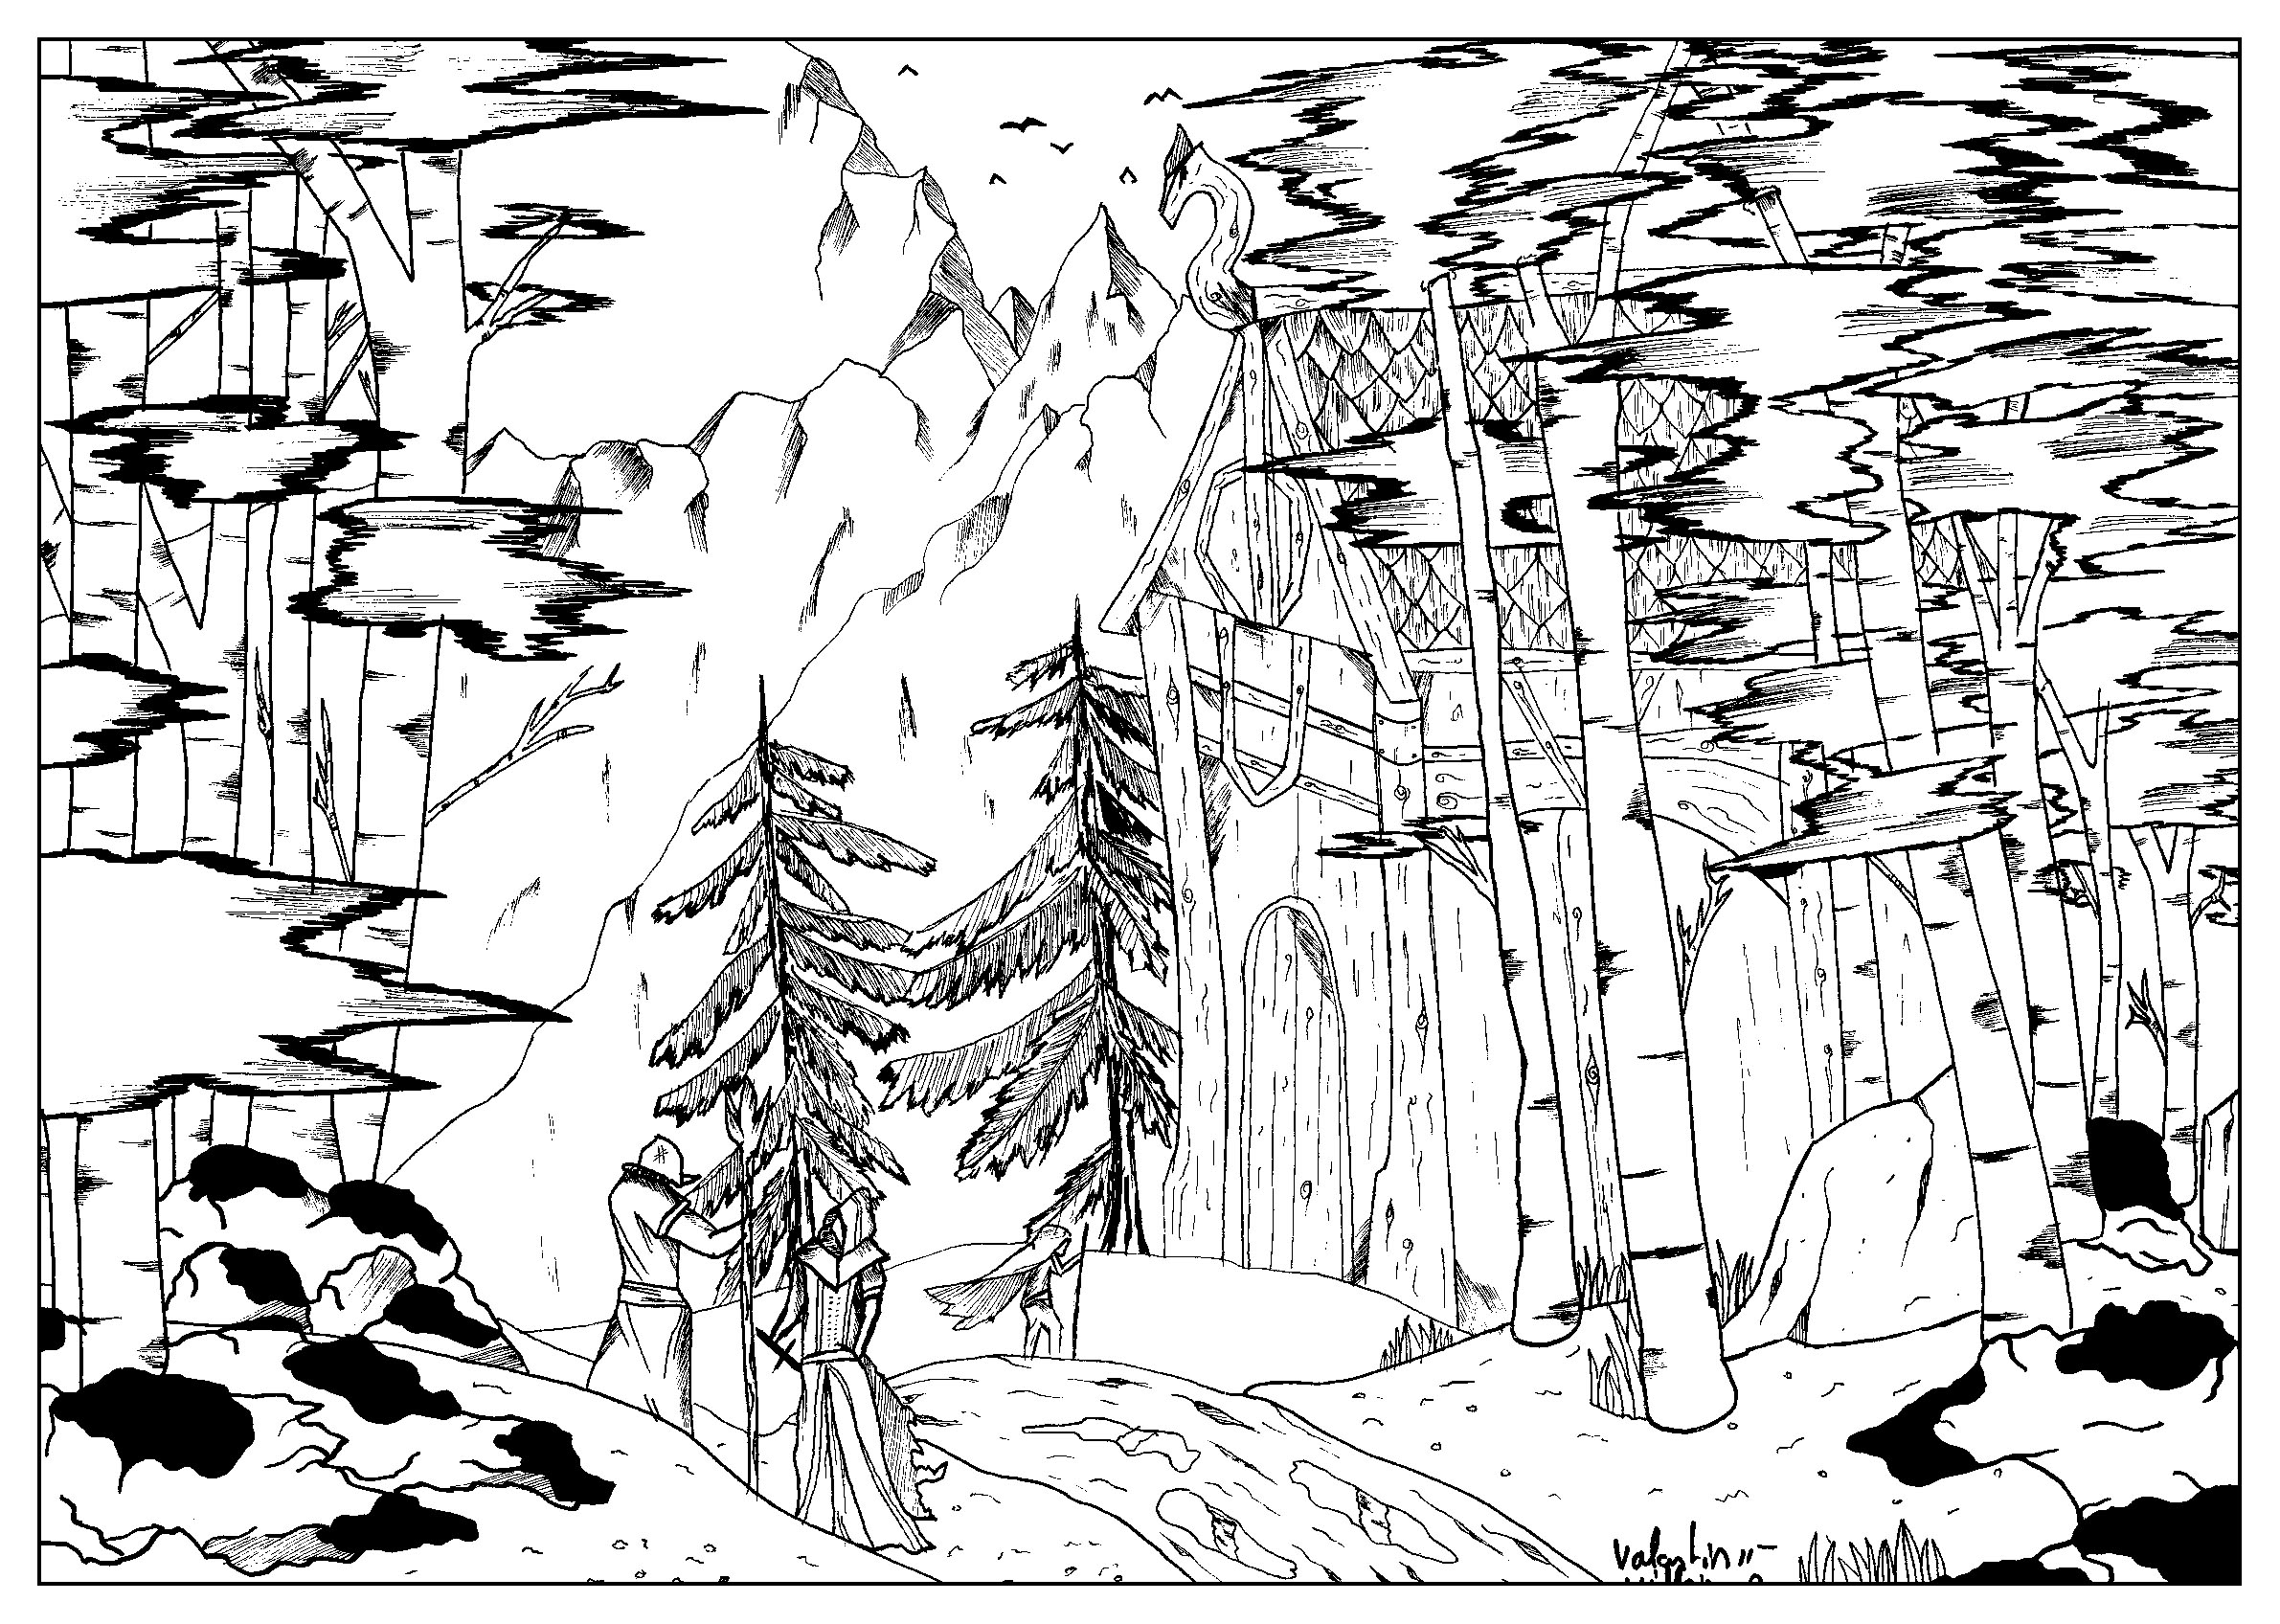 A coloring page with a viking house hidden in the forest